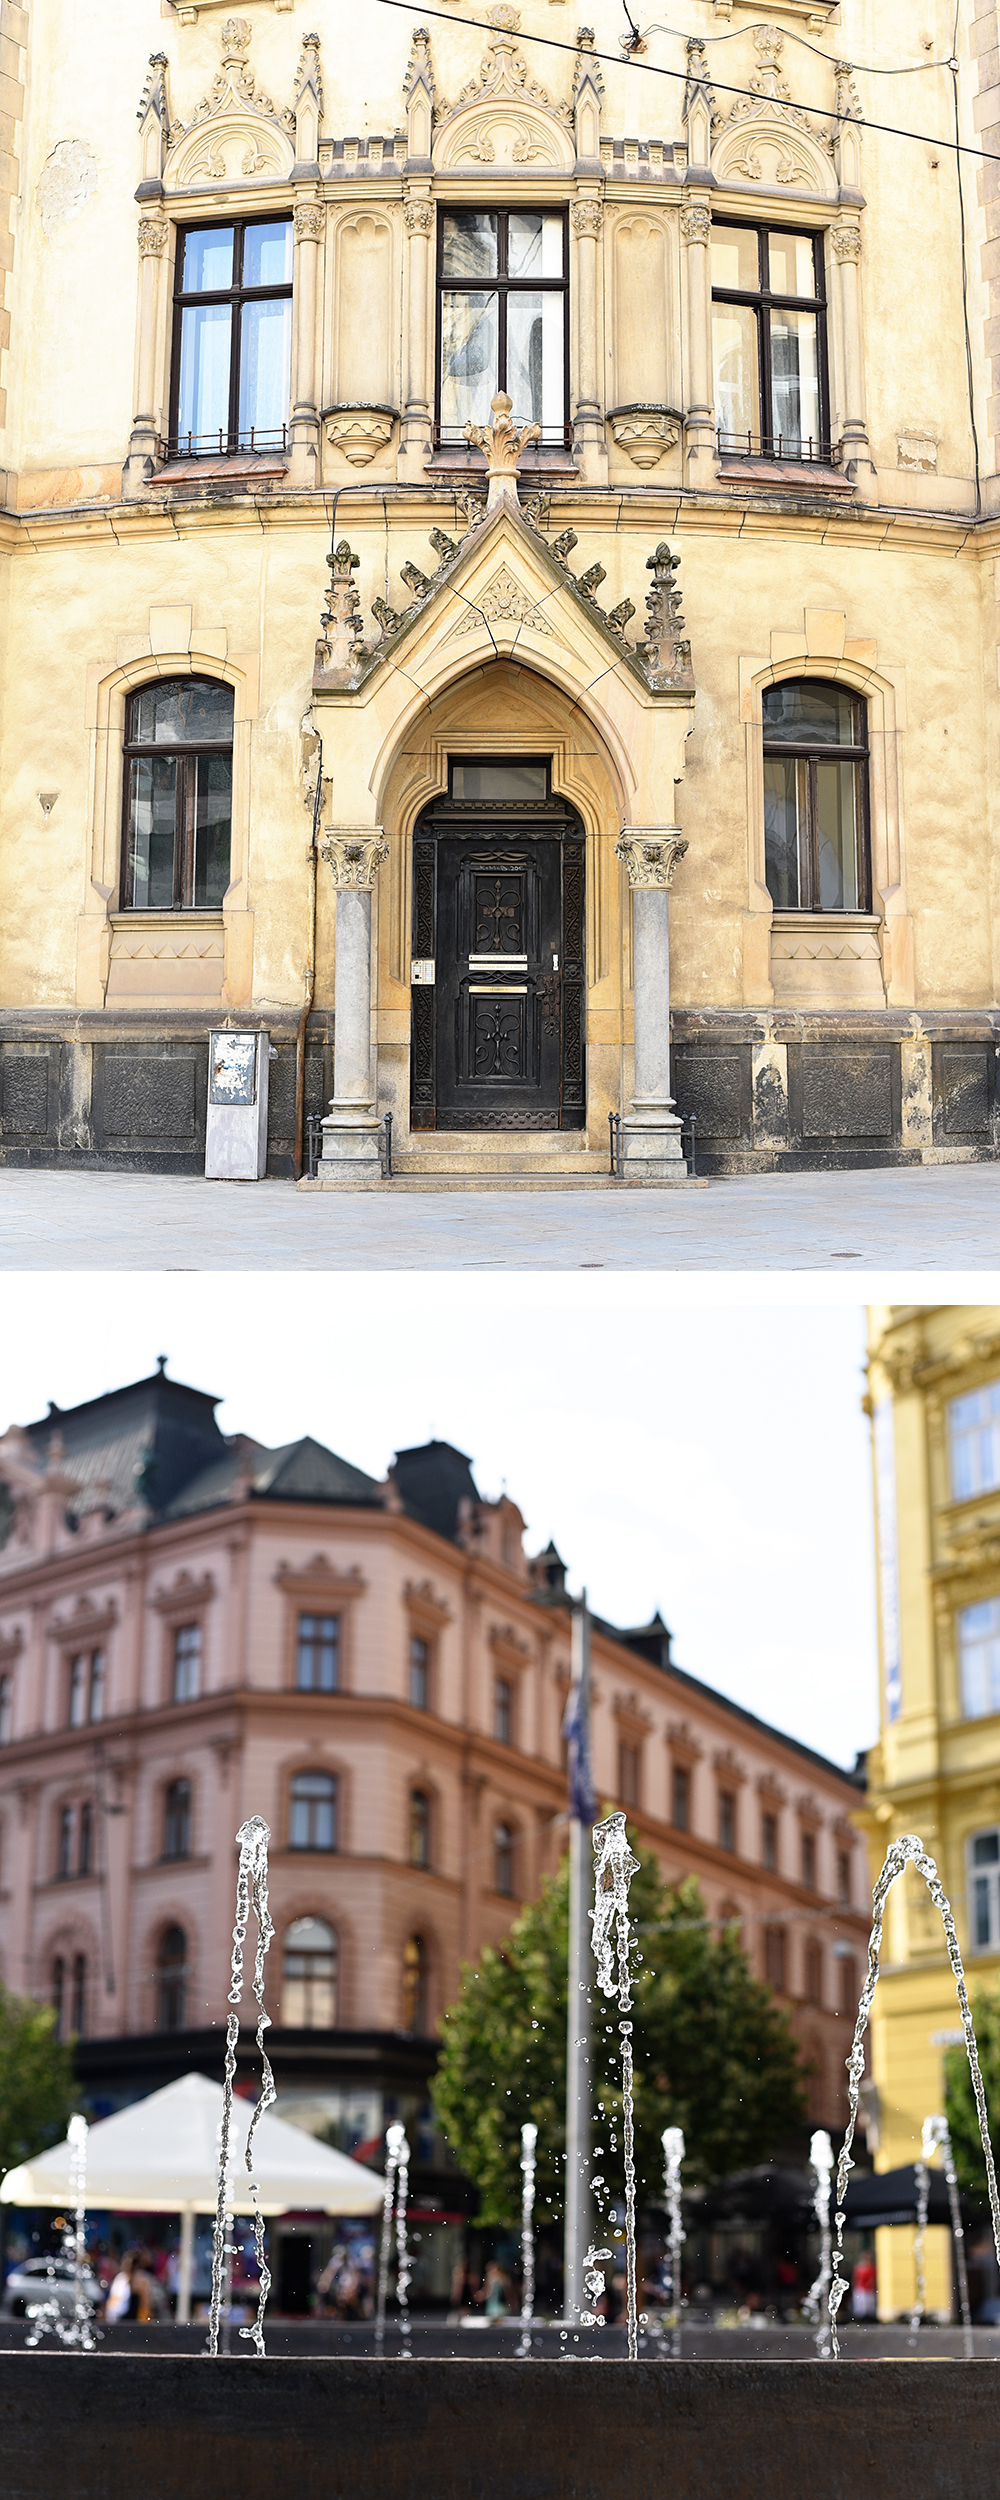 We spent one perfect day in Brno, Czech Republic, and I feel in love with the city.